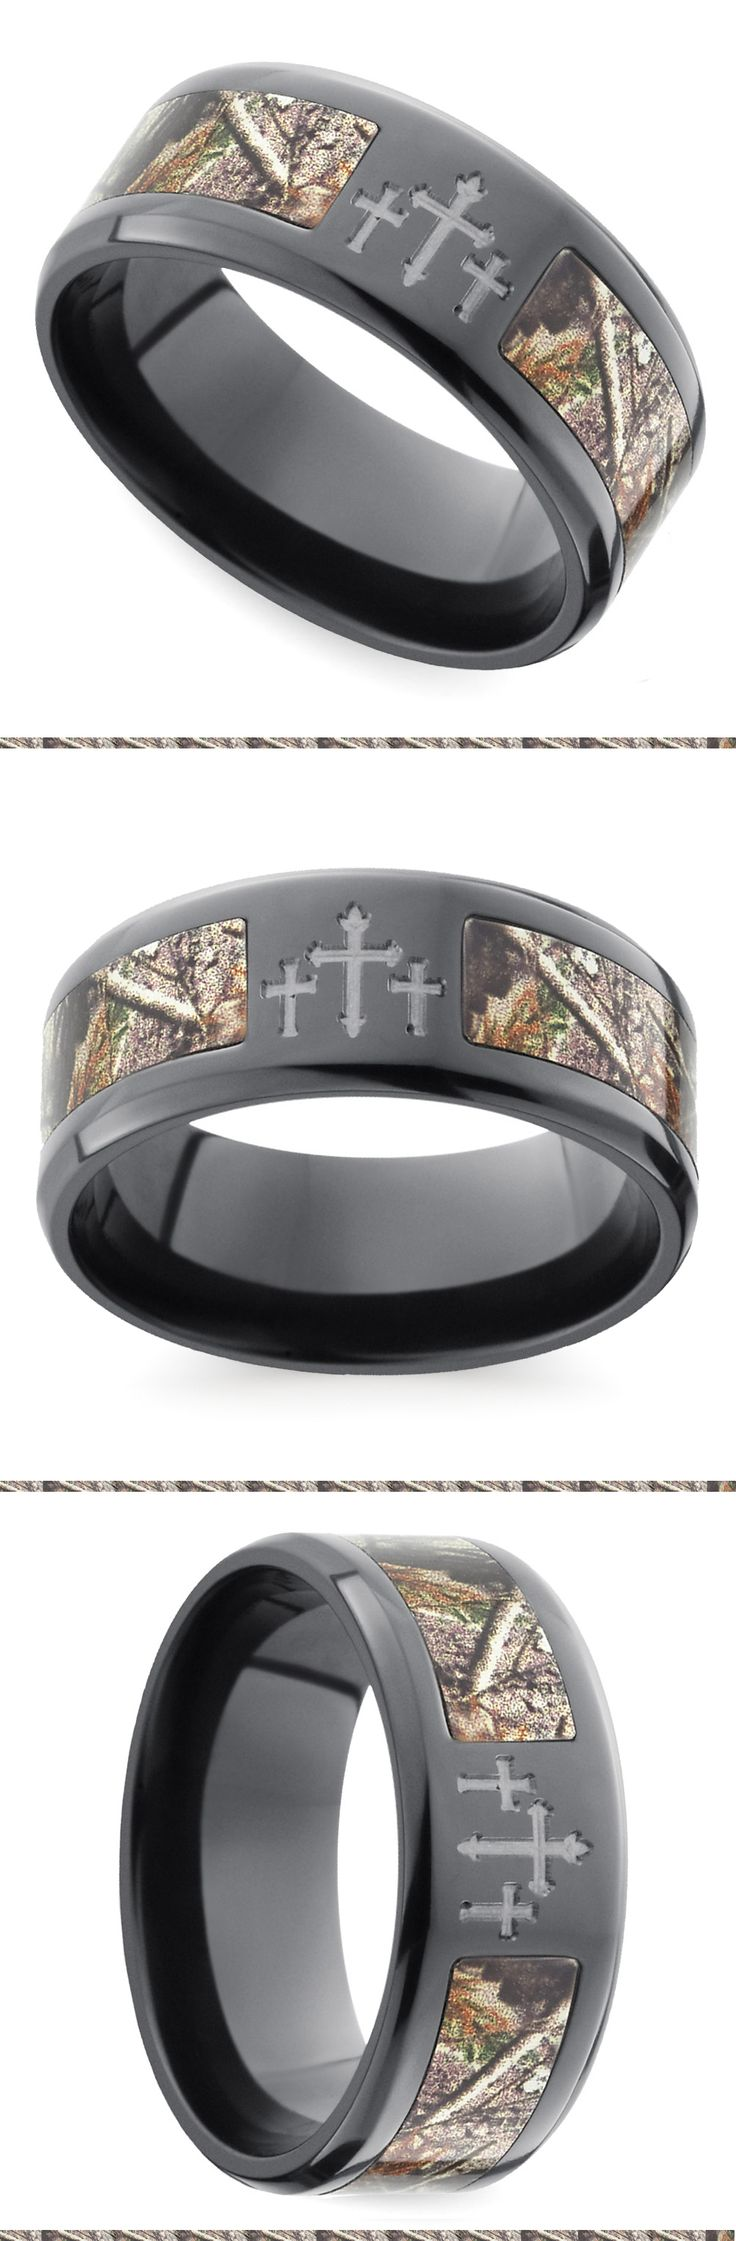 Three crosses adorn the top of this 9 mm zirconium band with a Realtree camouflage inlay and beveled edges for a smooth finish. Proudly made in the USA and comfort fit.